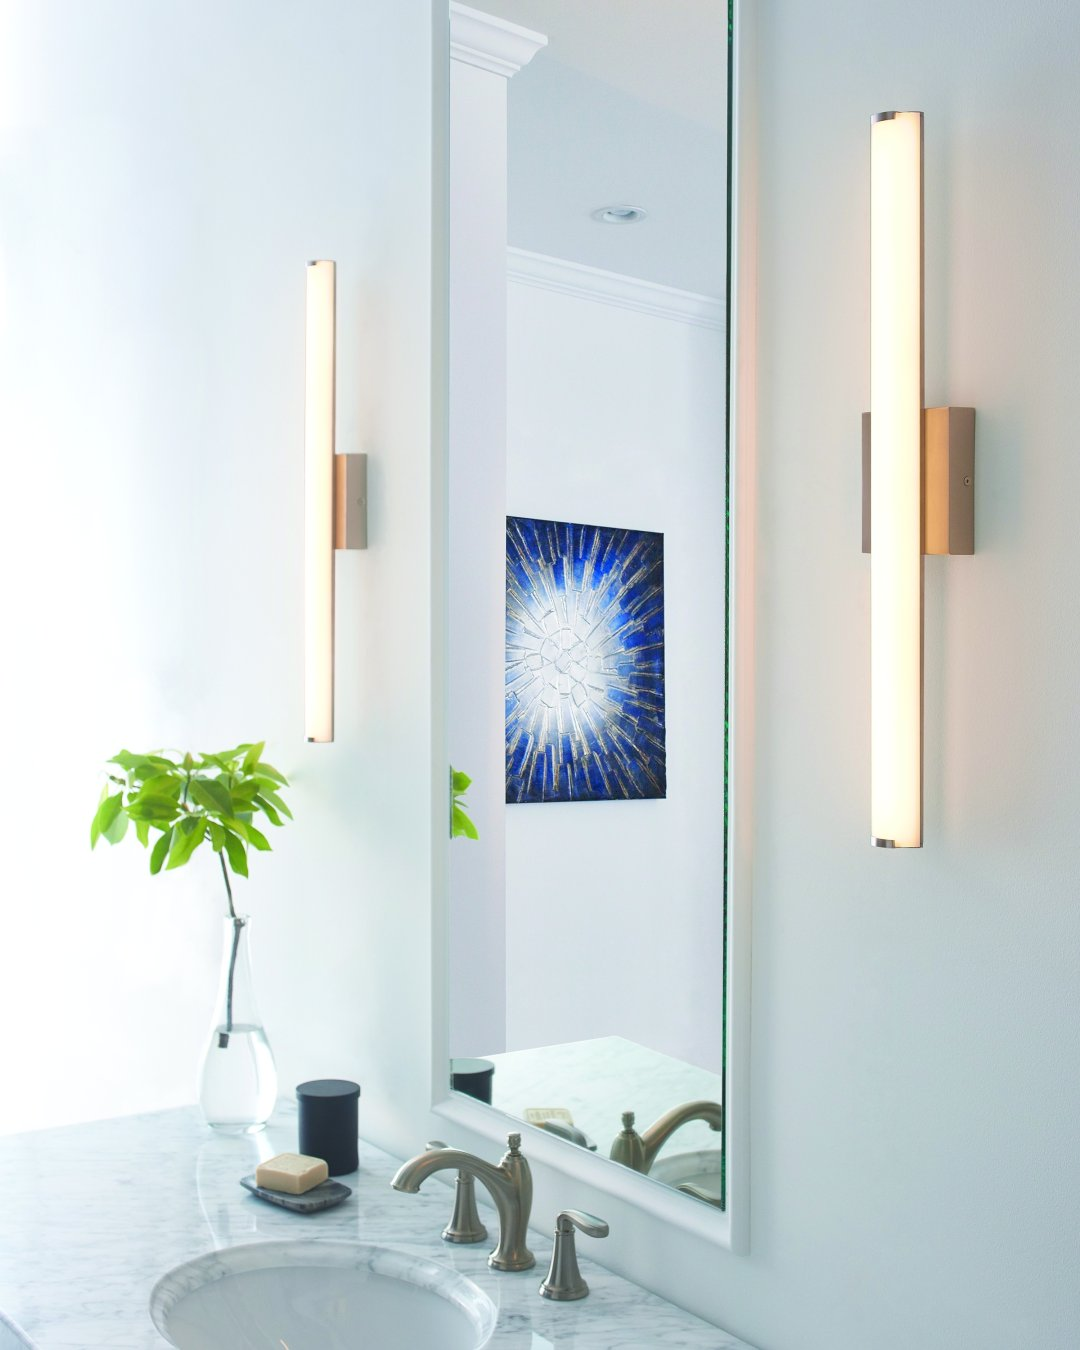 Bathroom Lighting Ideas bathroom lighting ideas | 3 tips for better bath lighting at